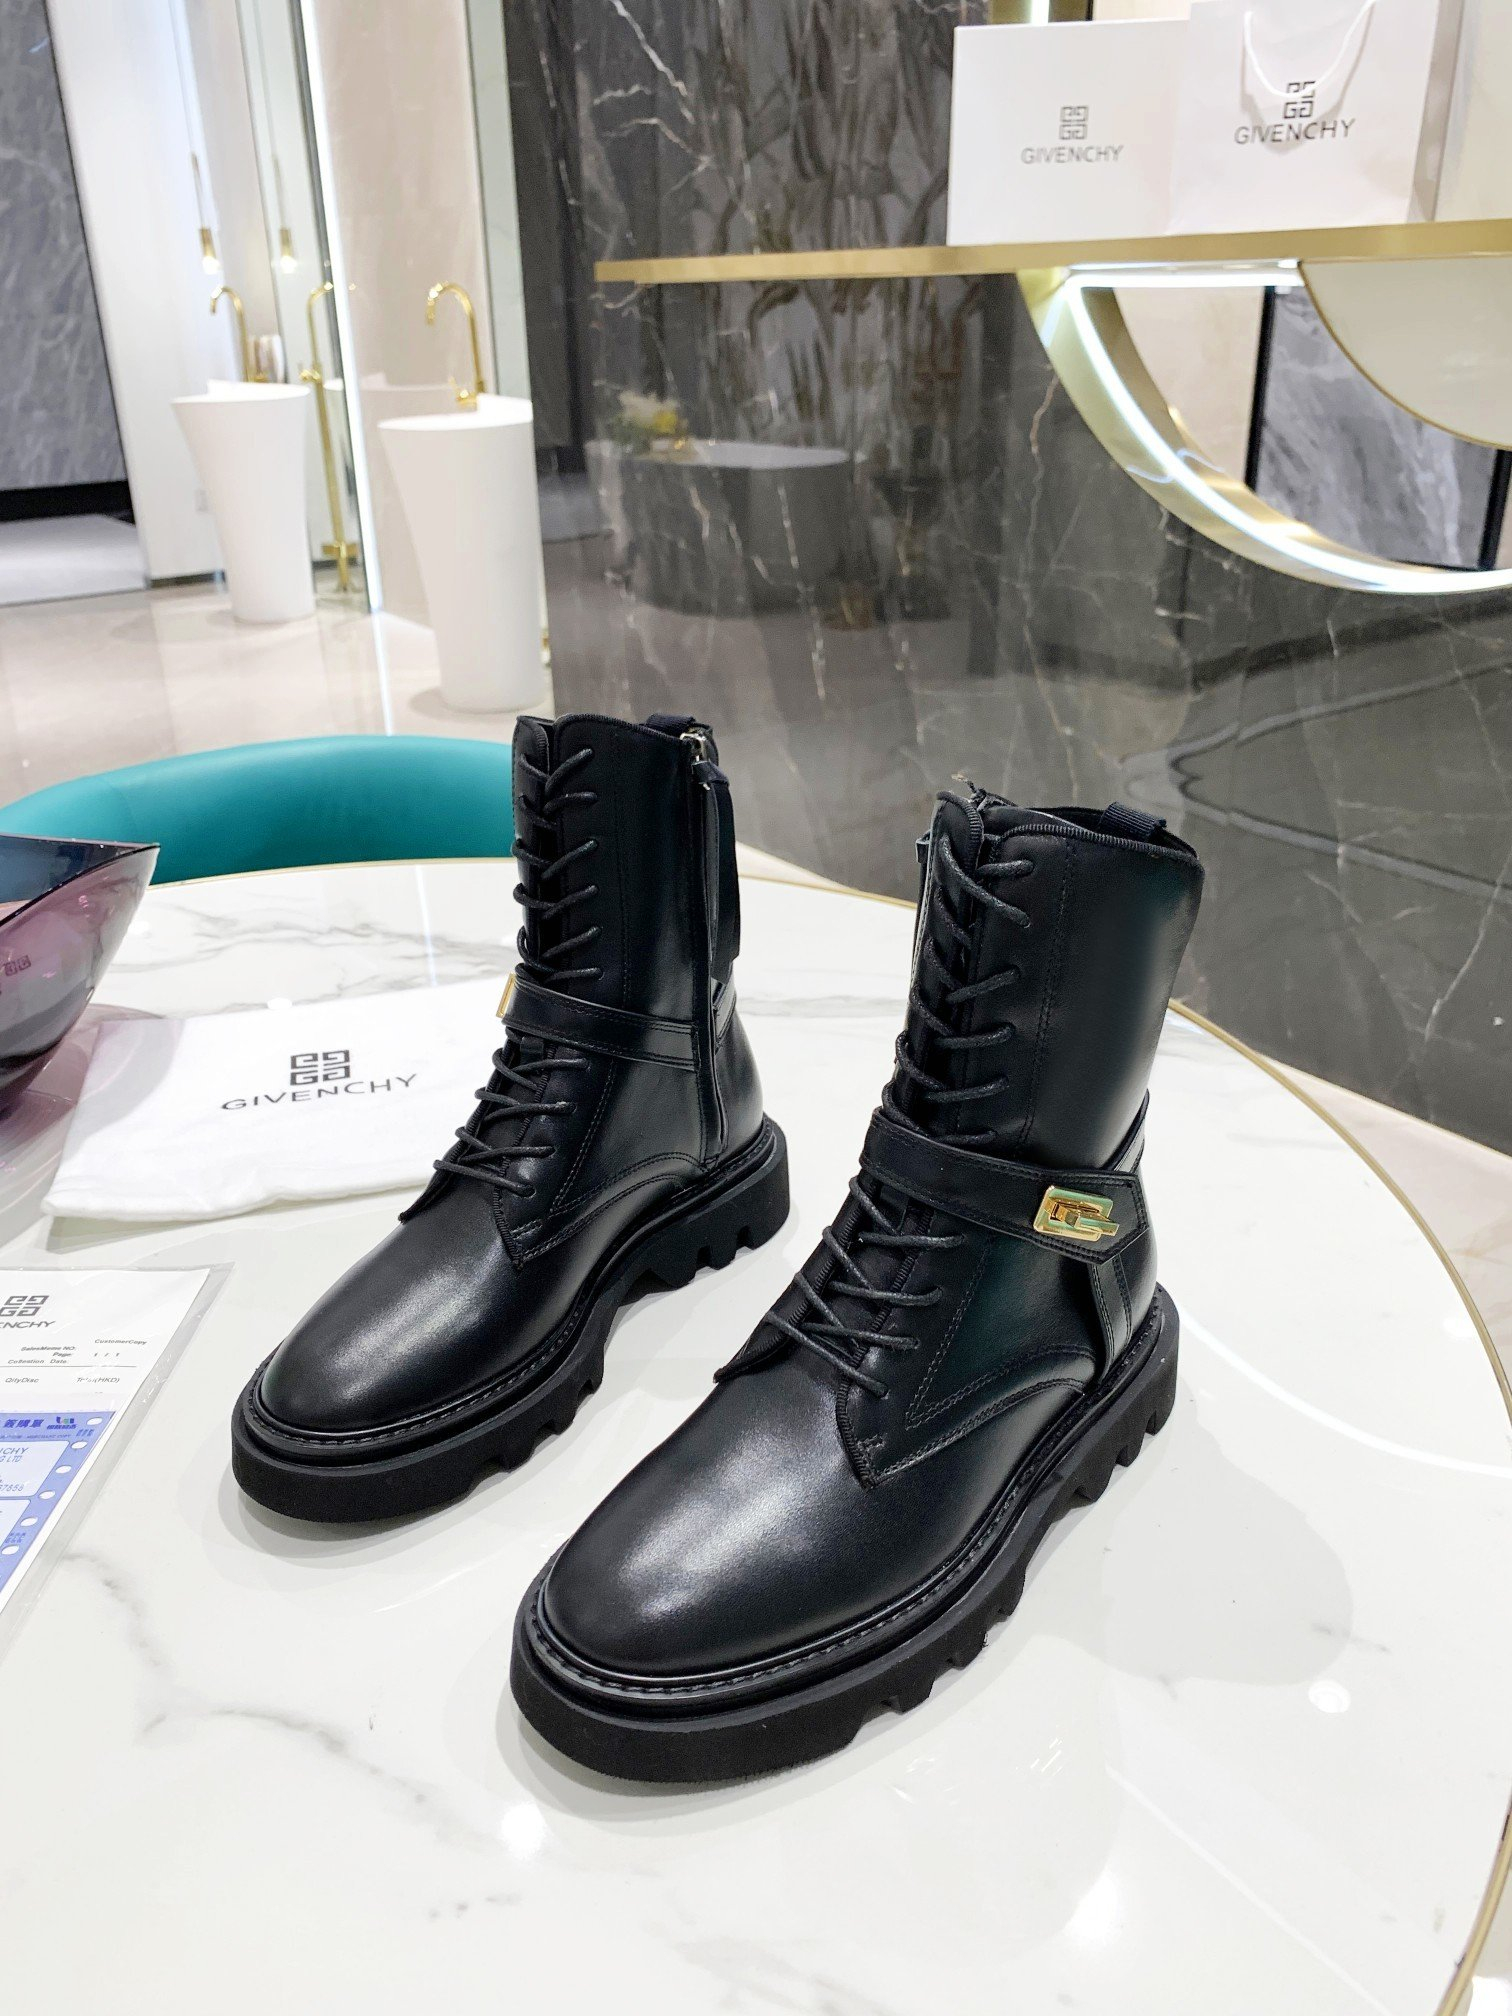 Image of Givenchy Women's 2021 NEW ARRIVALS Fashion Boots Shoes